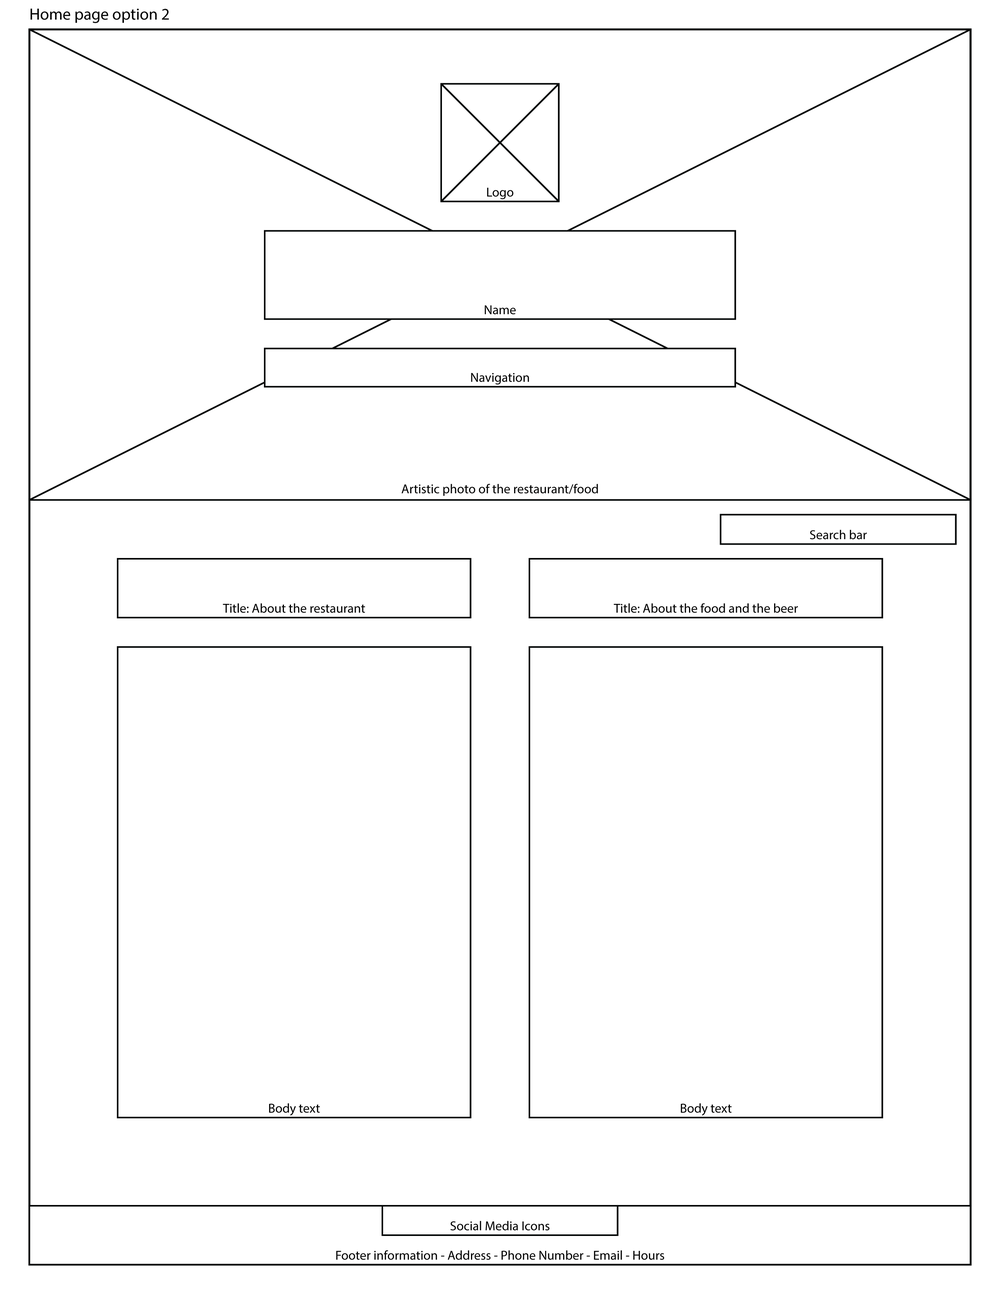 Wright_Max_Wireframes-02.png